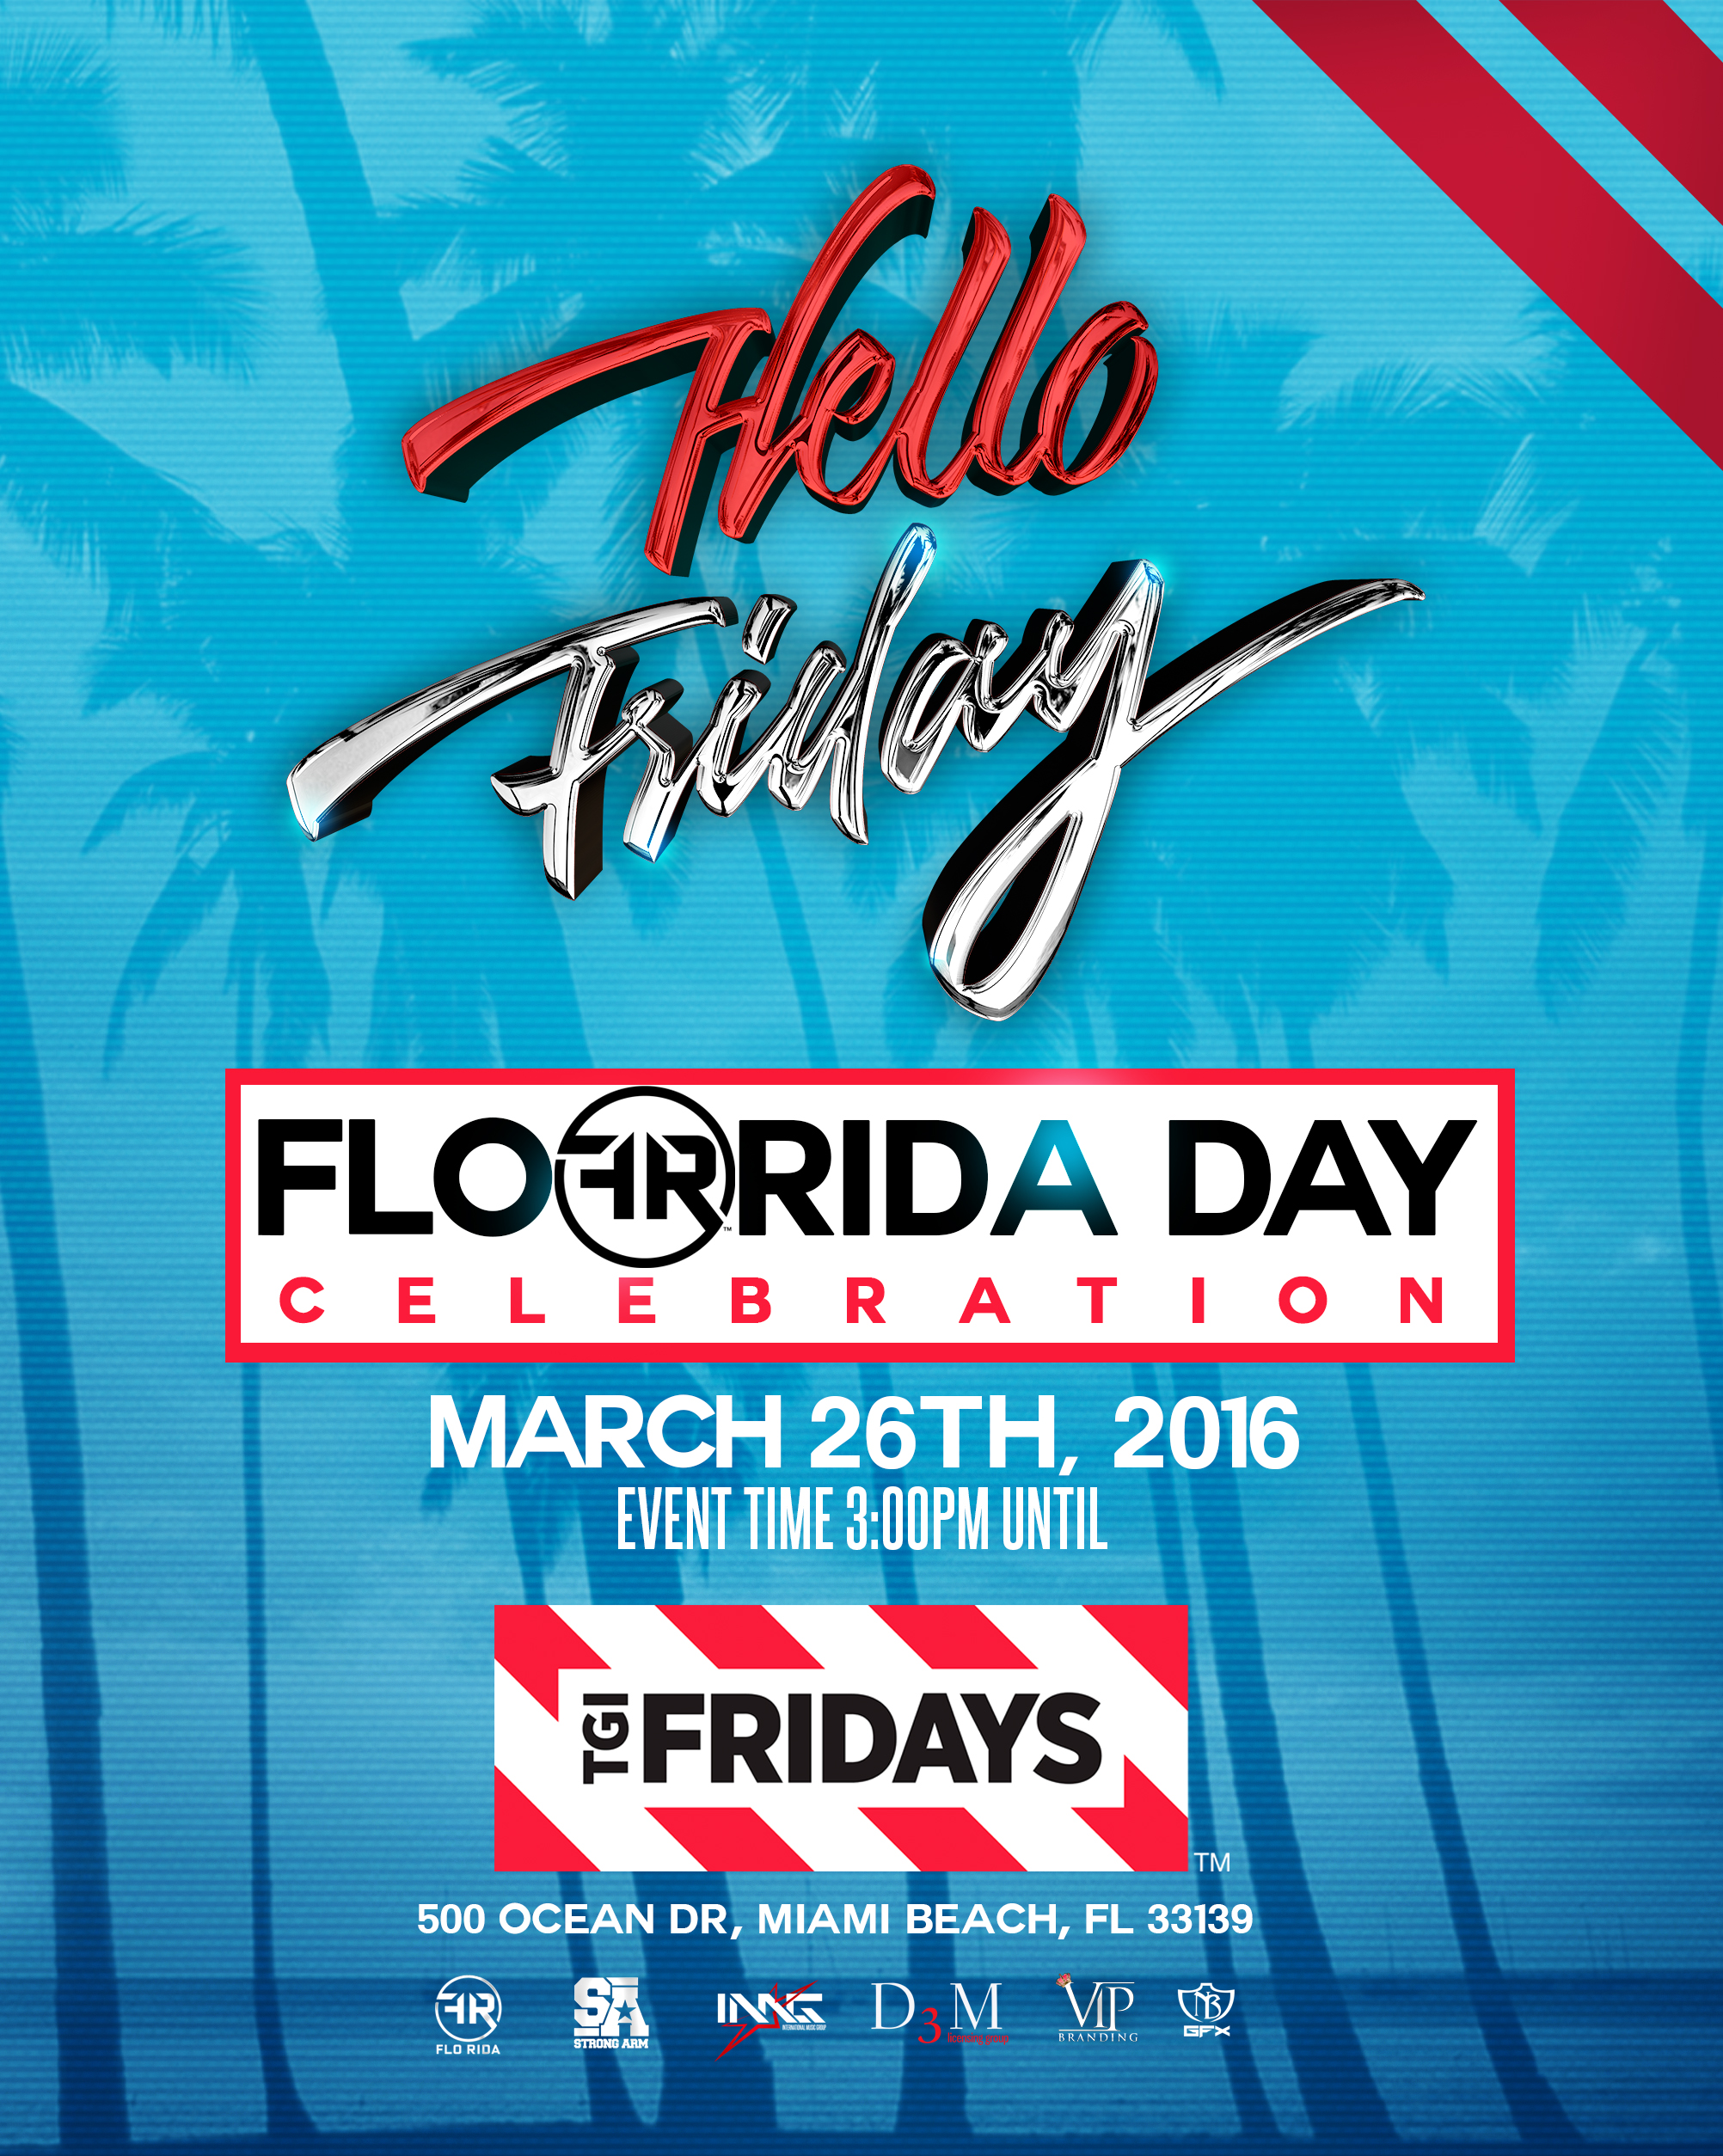 Hello Fridays Flo Rida Day Signage